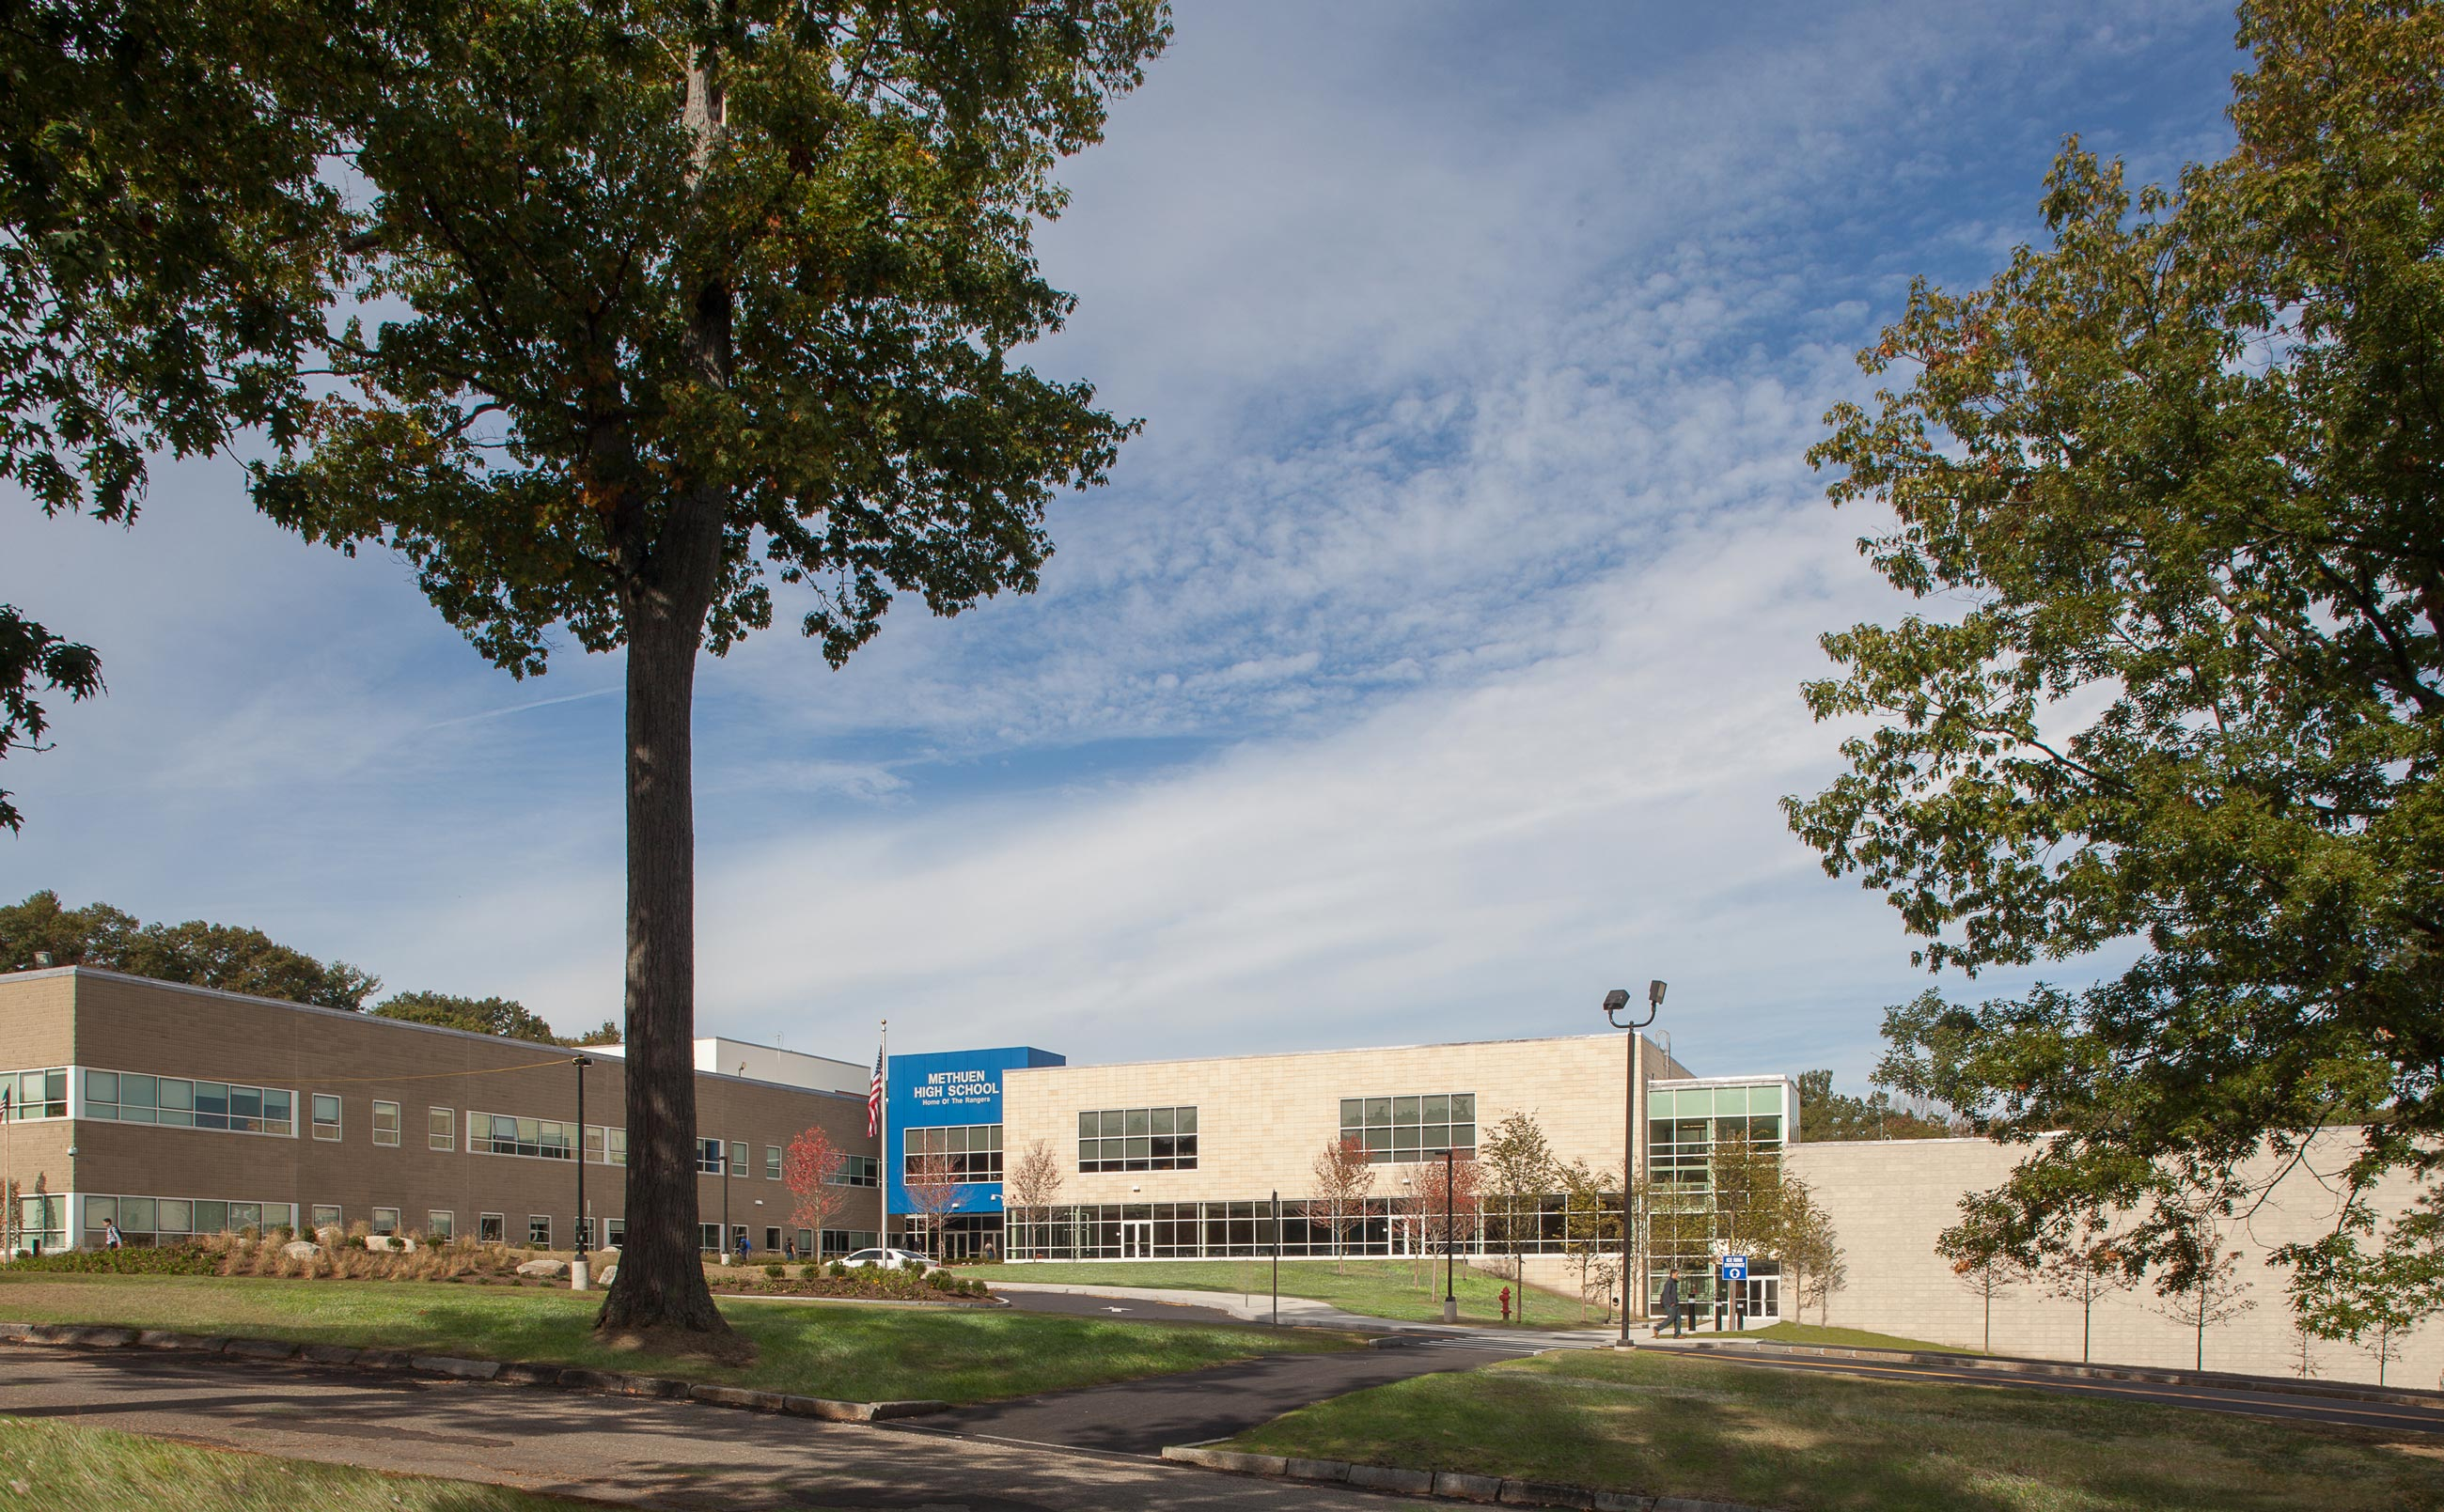 Exterior view of Methuen High Schools, with it's blue entrance visible in the background, and trees and landscaping in the foreground.